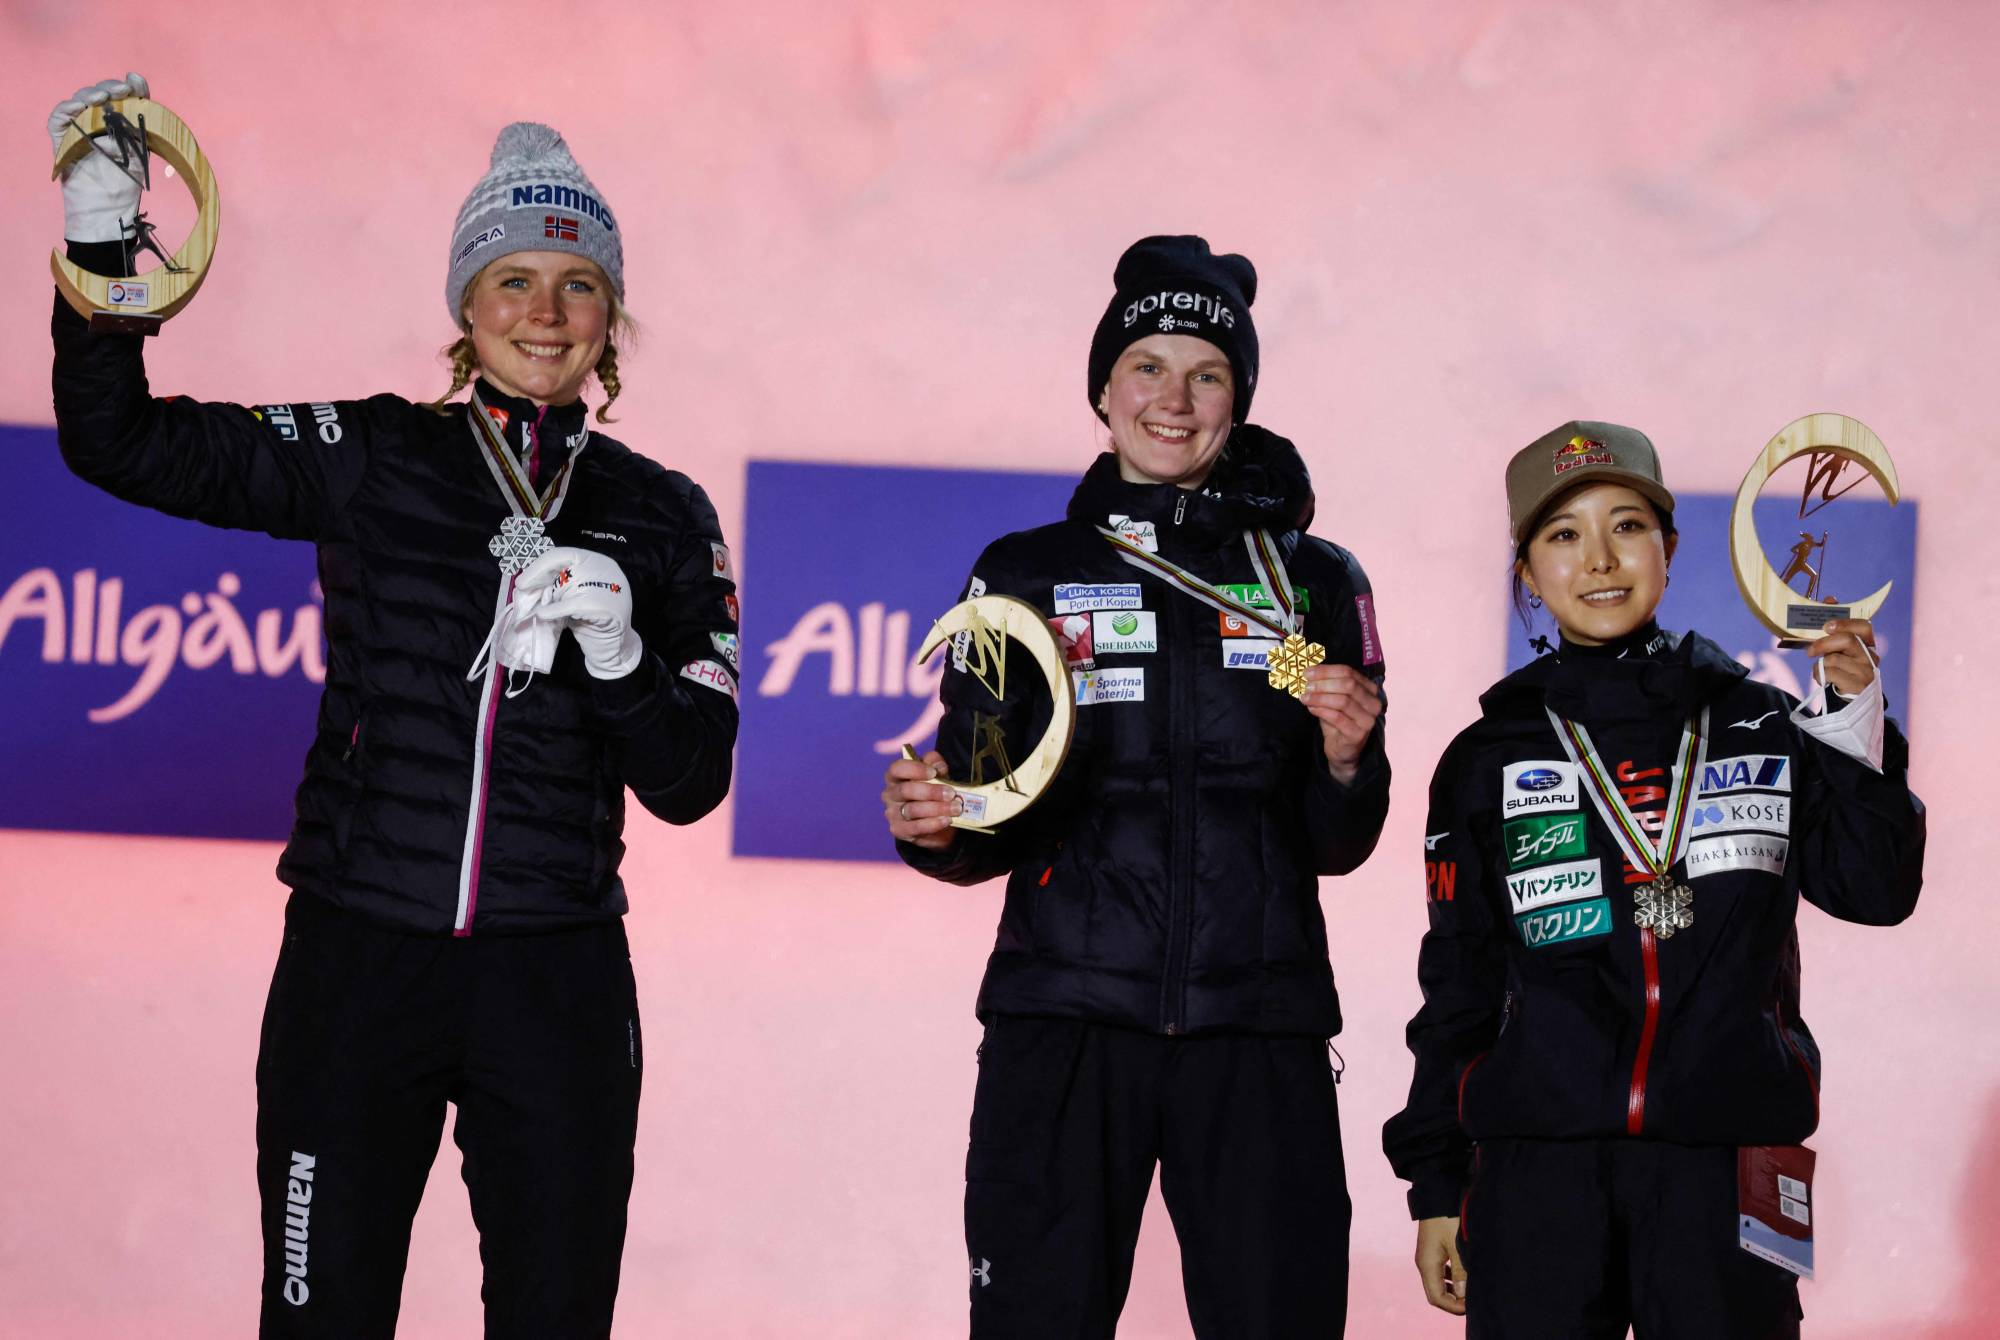 Slovenian winner Ema Klinec (center), Norwegian runner-up Maren Lundby (left) and third-place finisher Sara Takanashi celebrate on the podium of the women's ski jump normal hill event at the Nordic World Ski Championships on Thursday in Oberstdorf, Germany. | AFP-JIJI